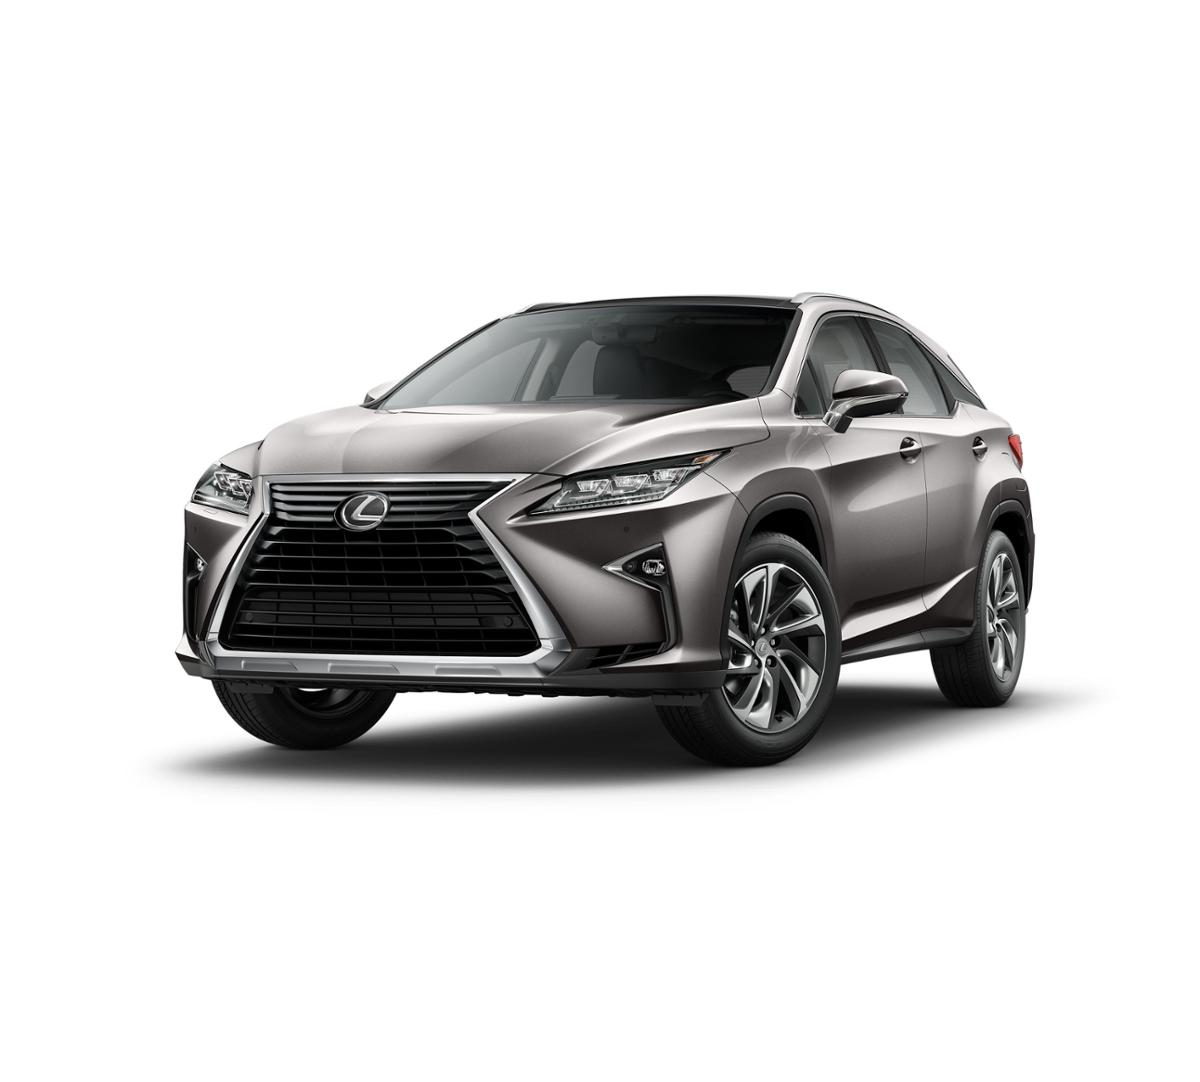 2019 Lexus RX 350 Vehicle Photo in Danvers, MA 01923